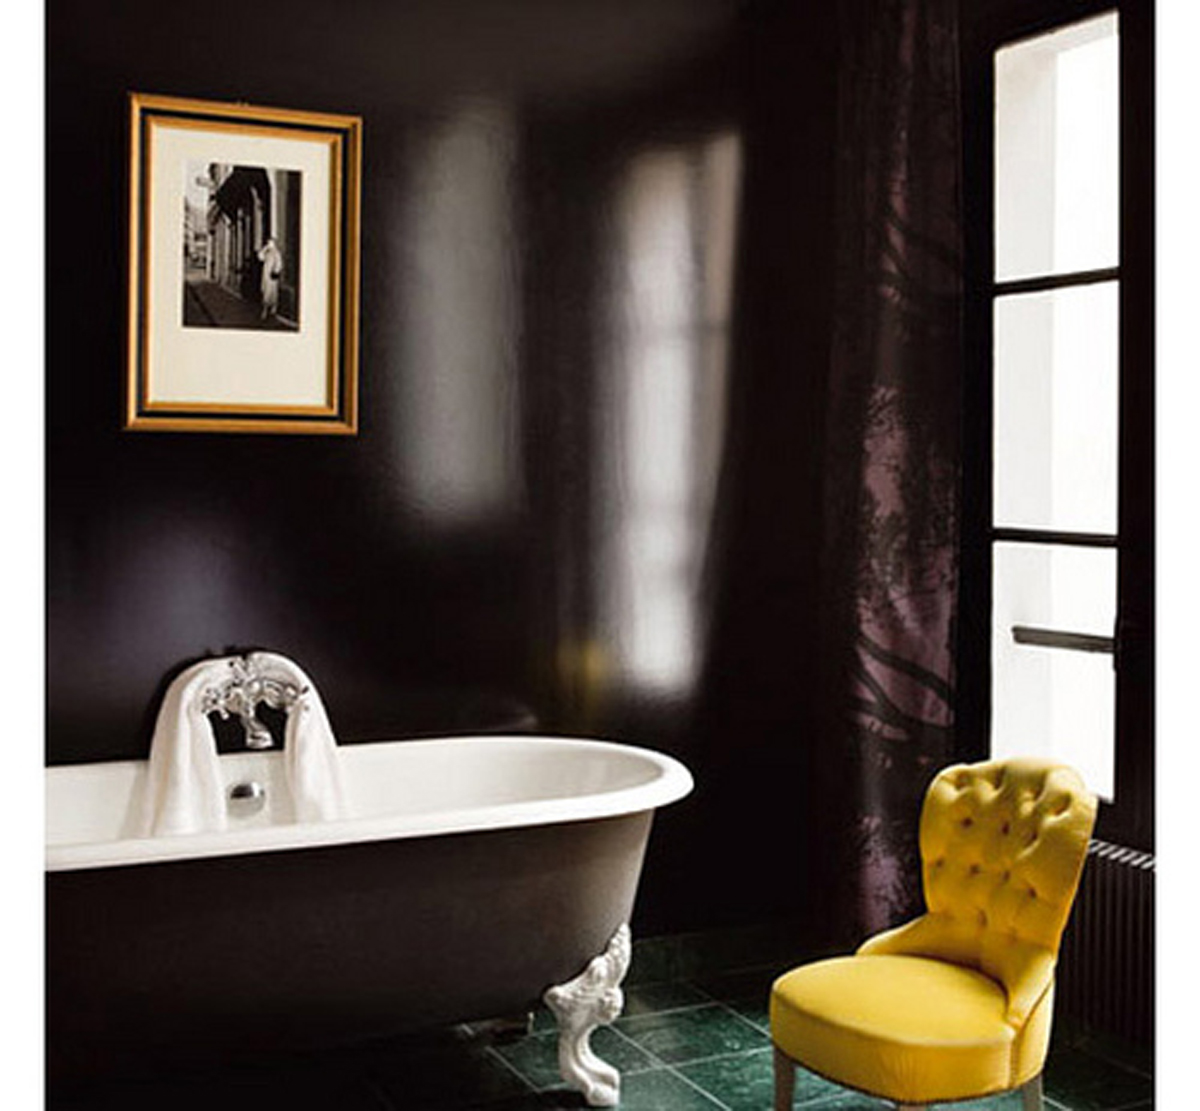 Black glossy bathroom with white tub and yellow chair, via 1 see cubed